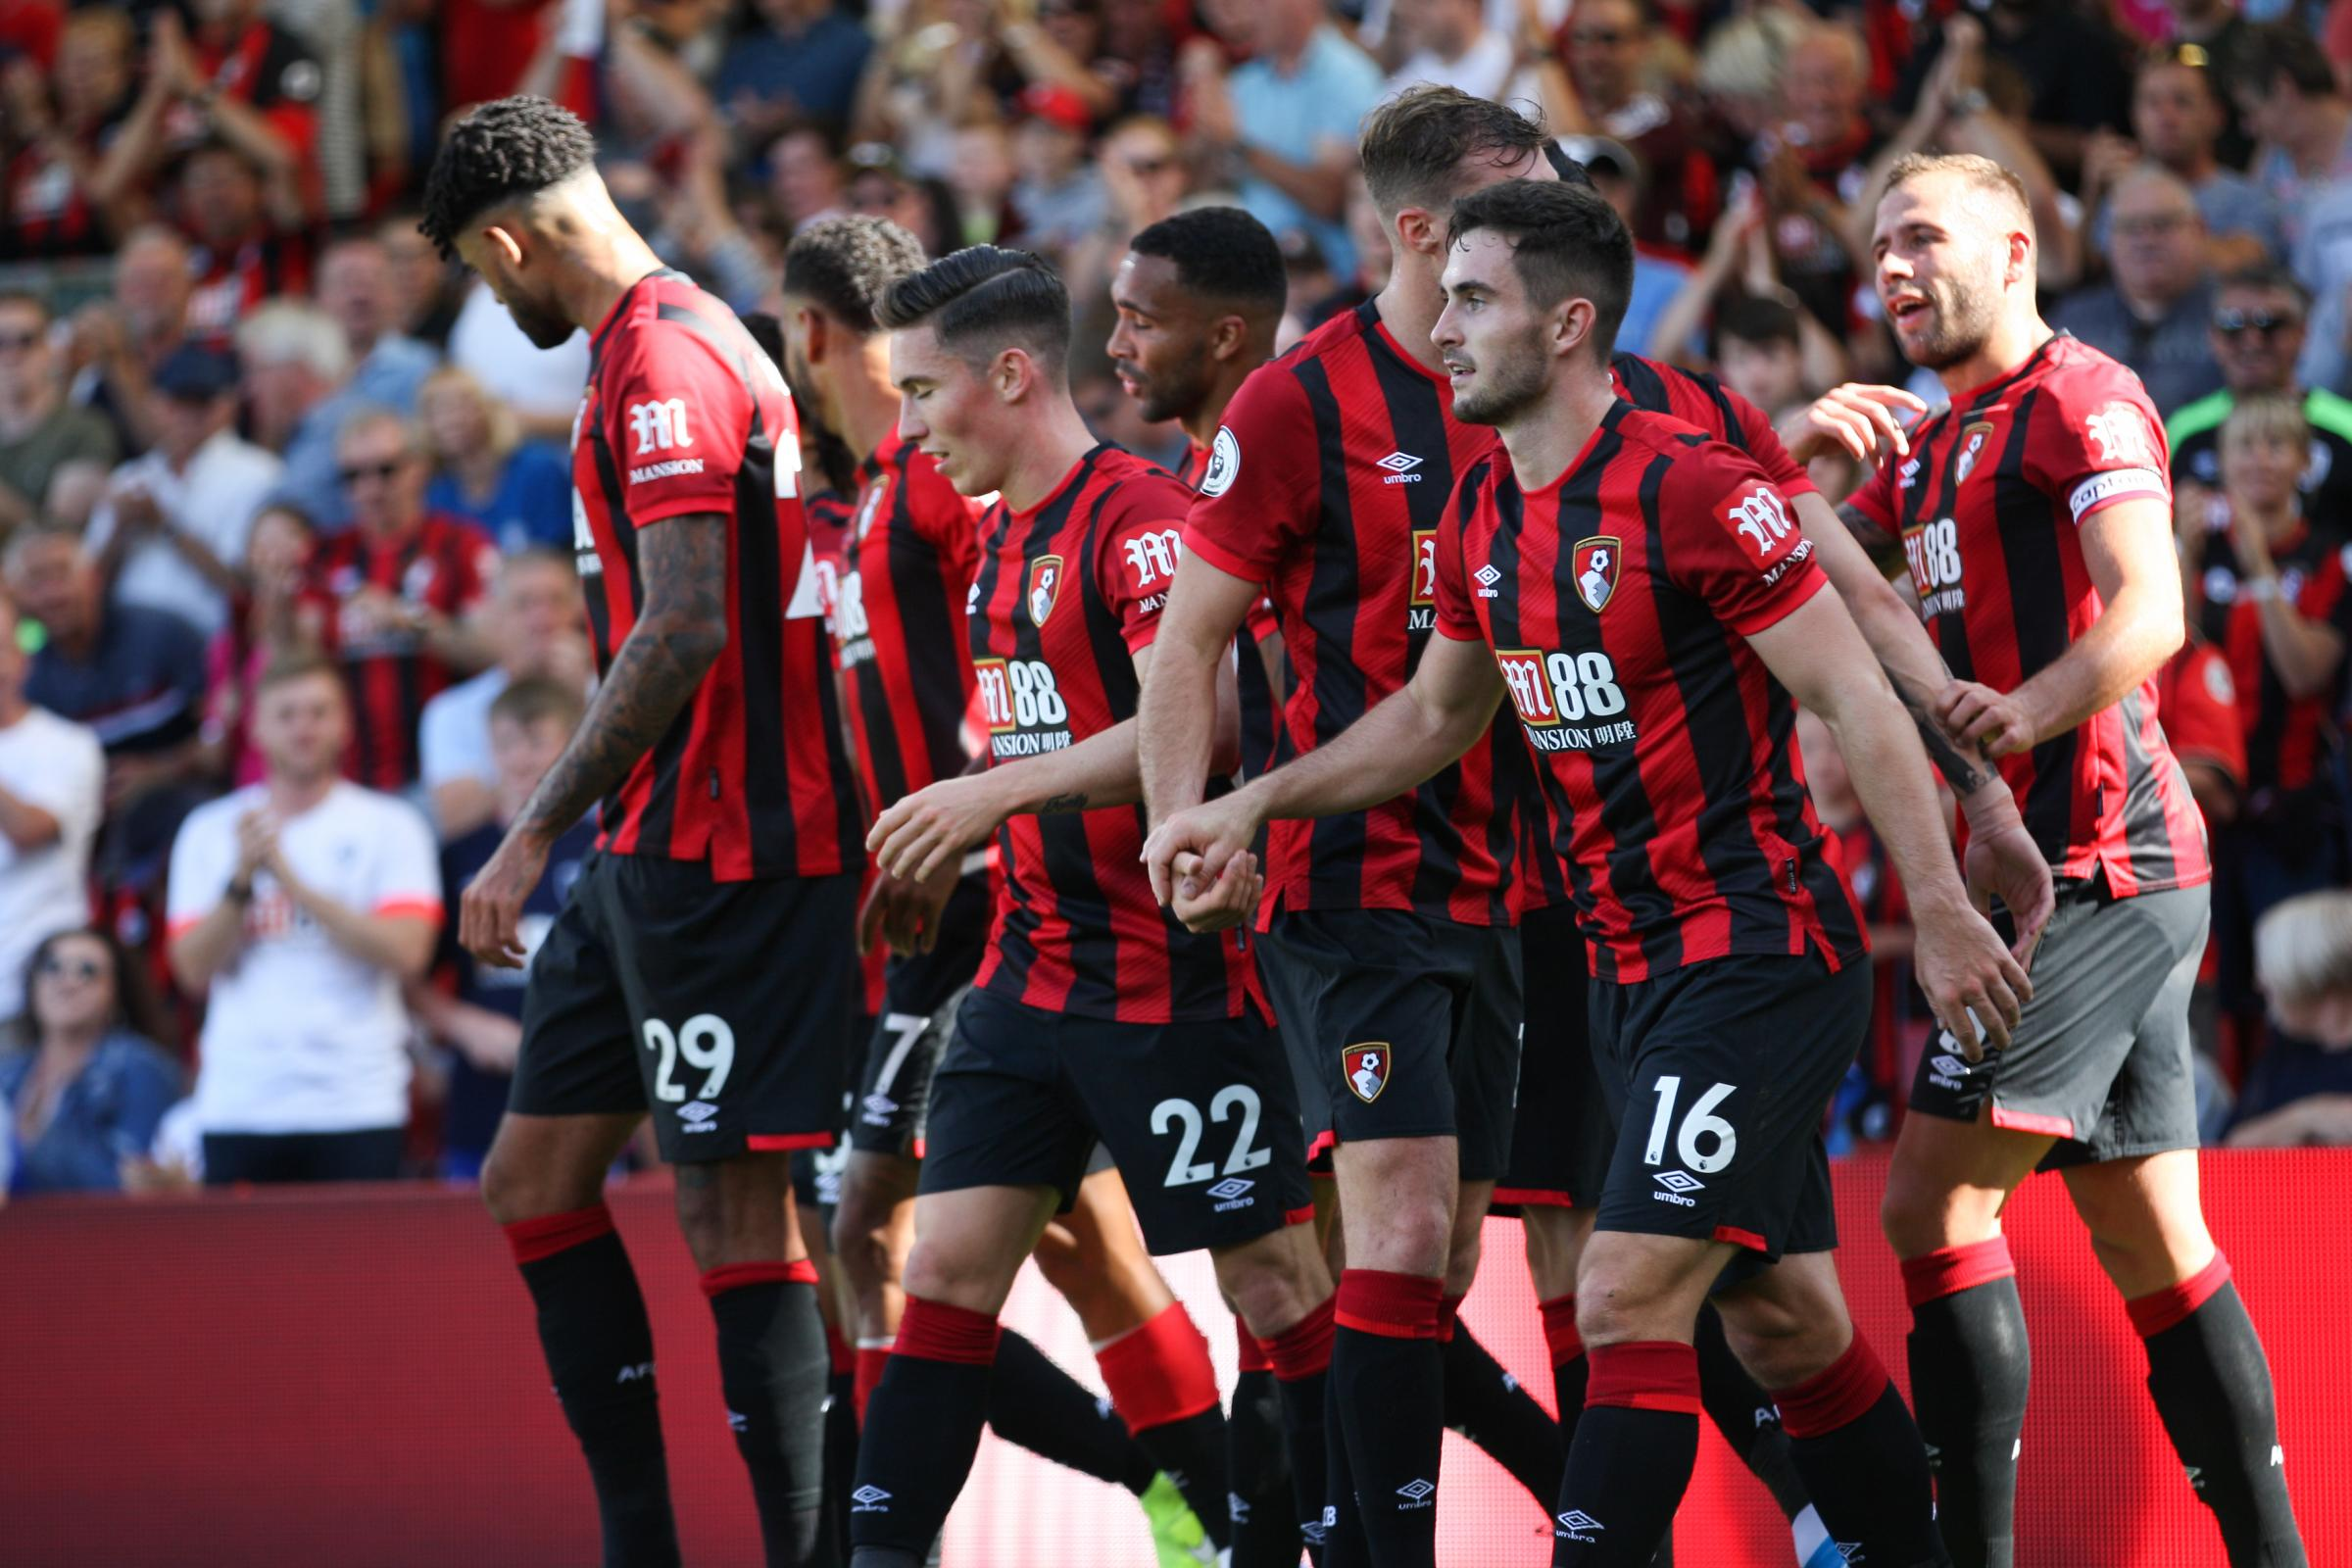 AFC Bournemouth can 'start looking up' after win over Everton, says Aaron Ramsdale